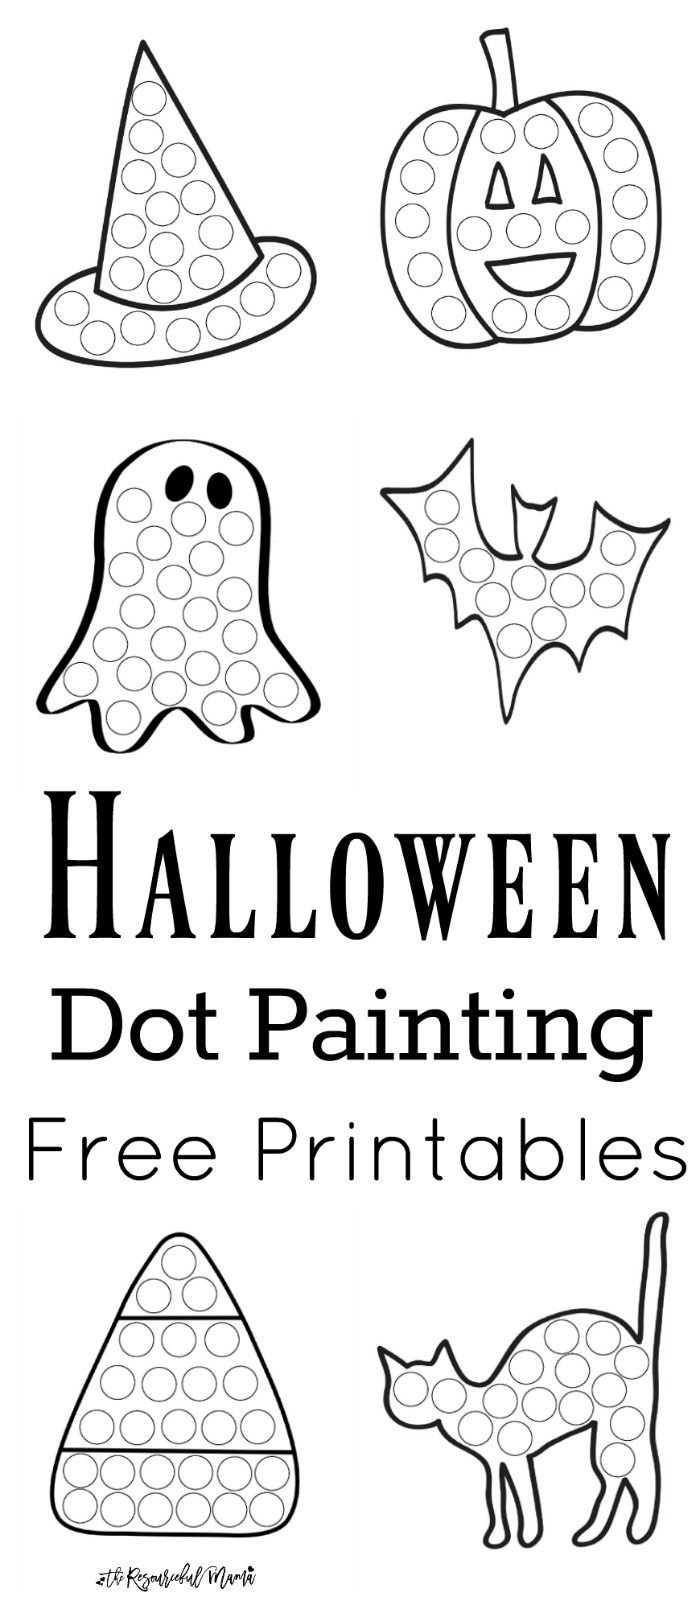 image about Printable Holloween Crafts identify Halloween Dot Portray Cost-free Printables Halloween